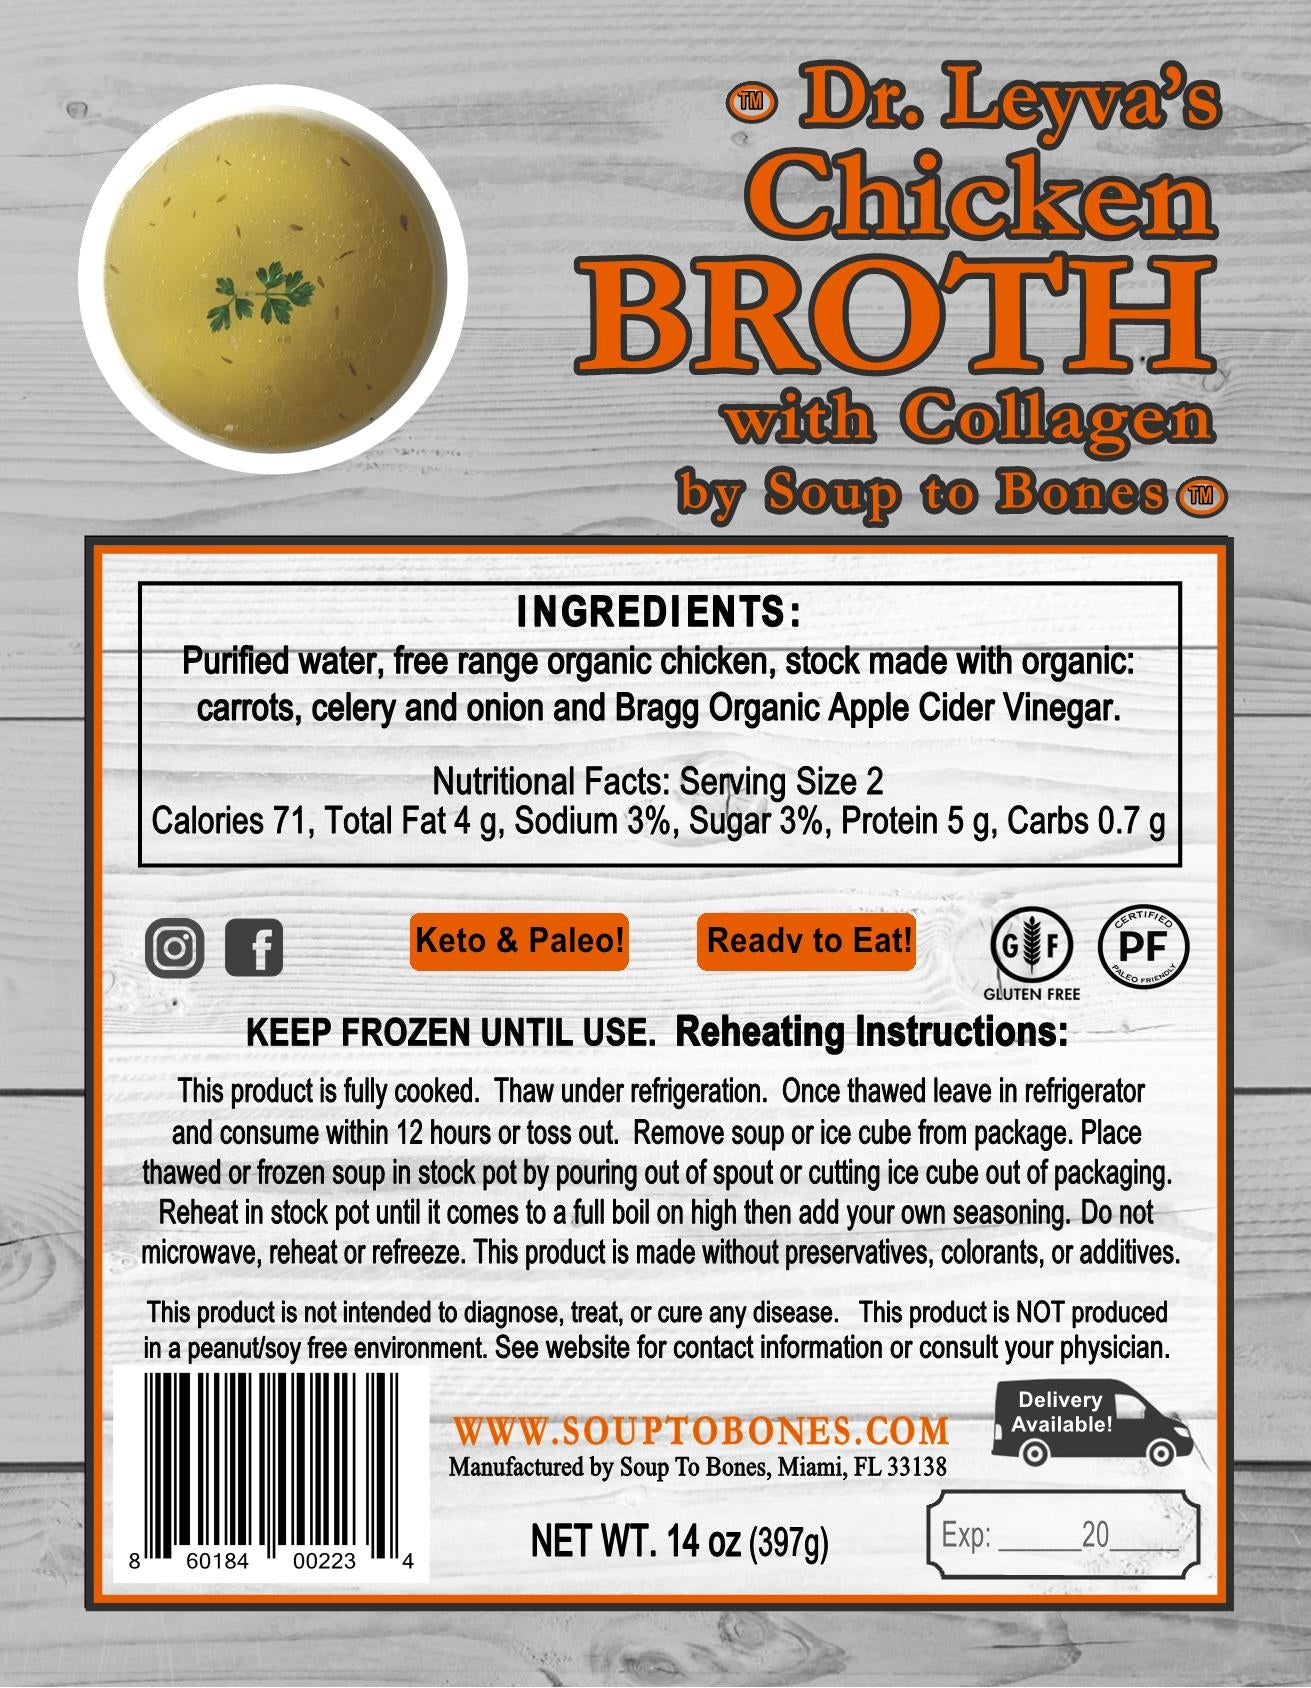 Dr. Leyva's Chicken Broth with Collagen